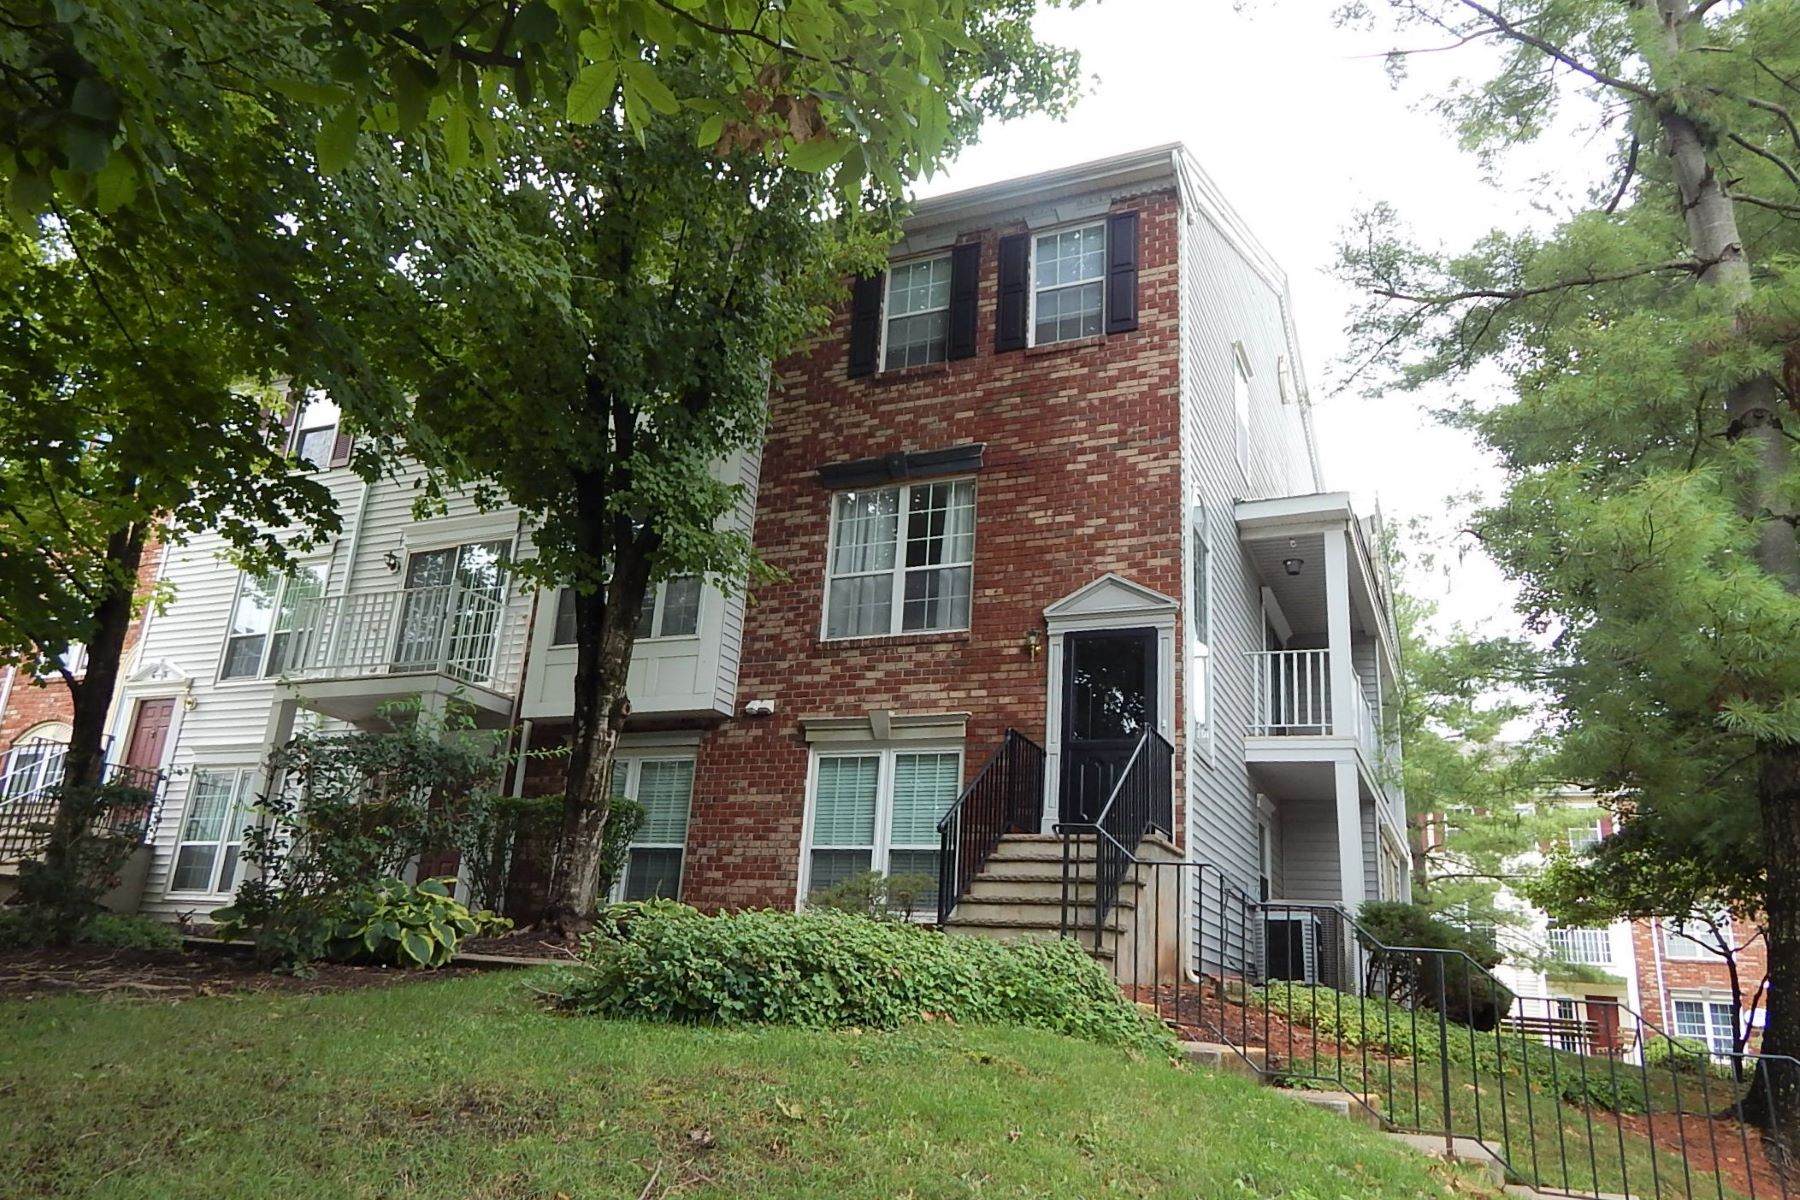 Additional photo for property listing at Two Bedroom Townhome Available for Rent 176 Sapphire Lane, Somerset, New Jersey 08823 United States